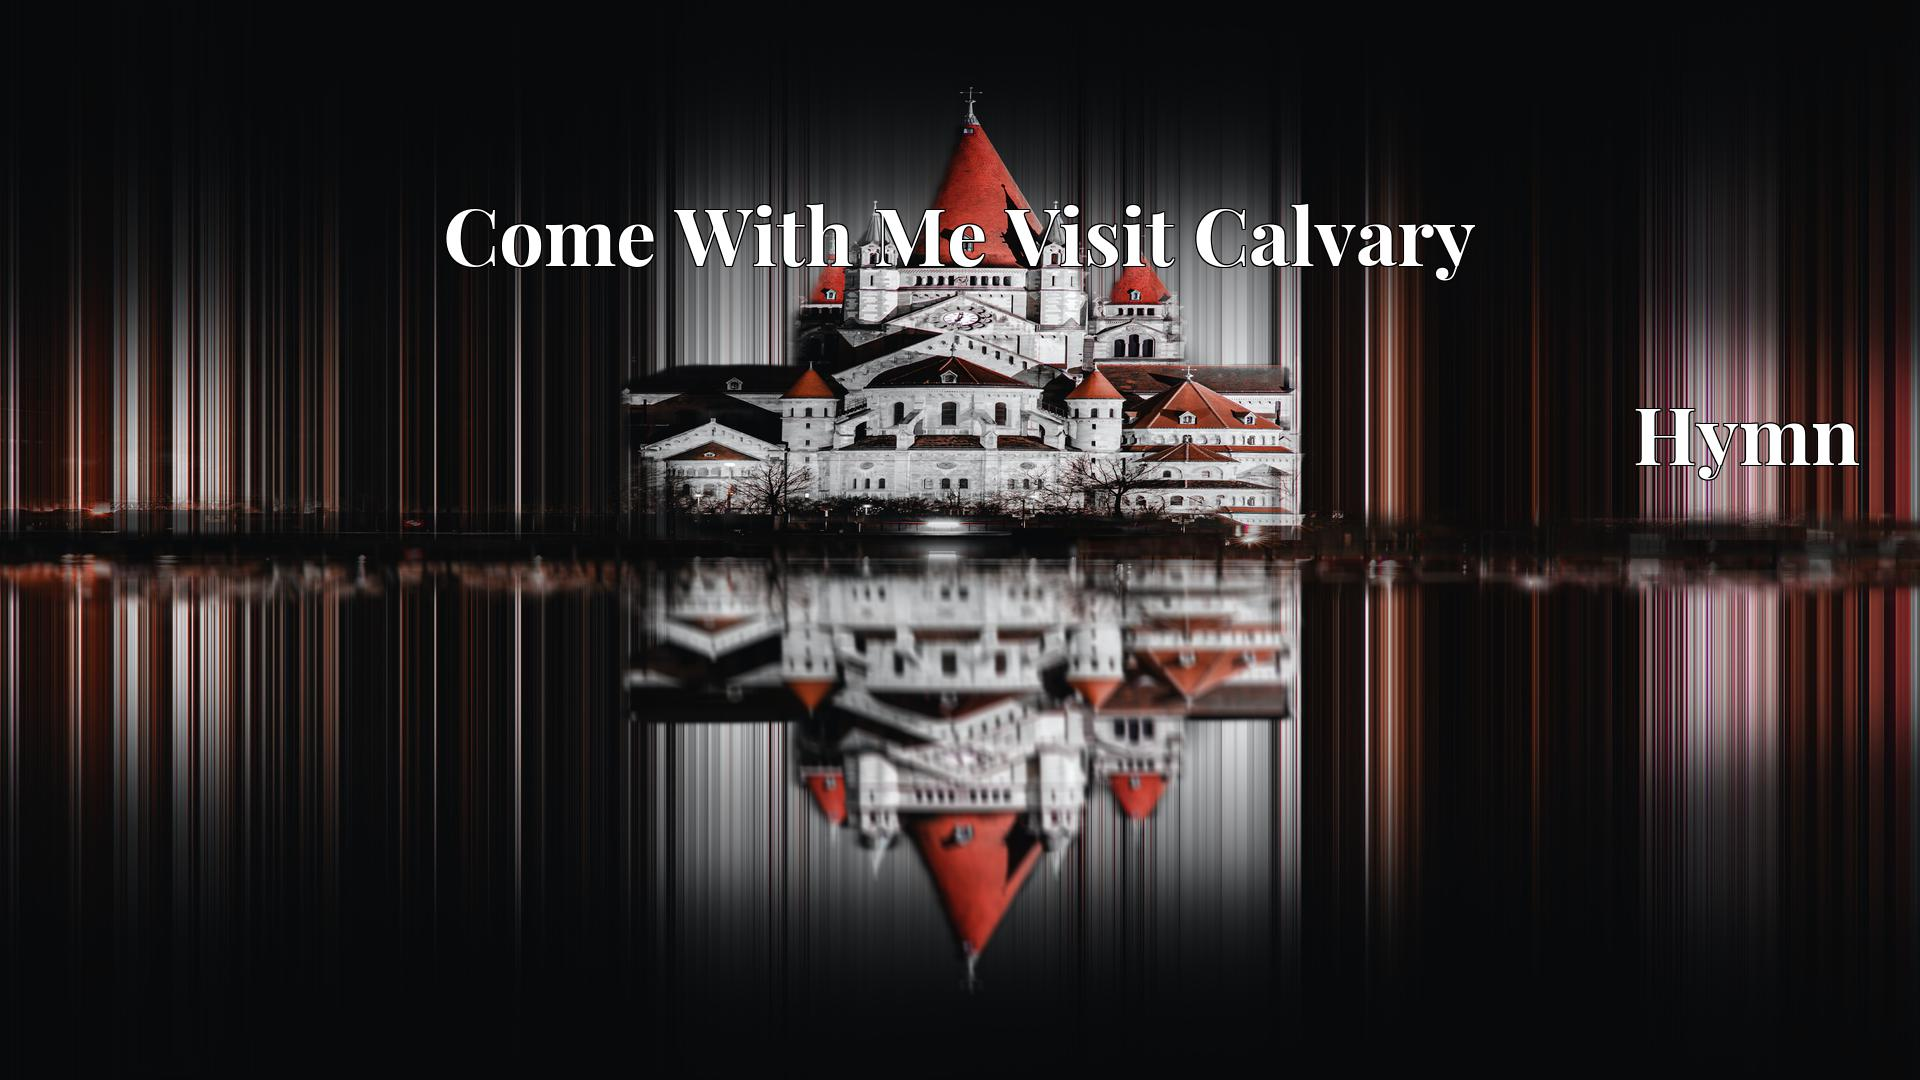 Come With Me Visit Calvary - Hymn